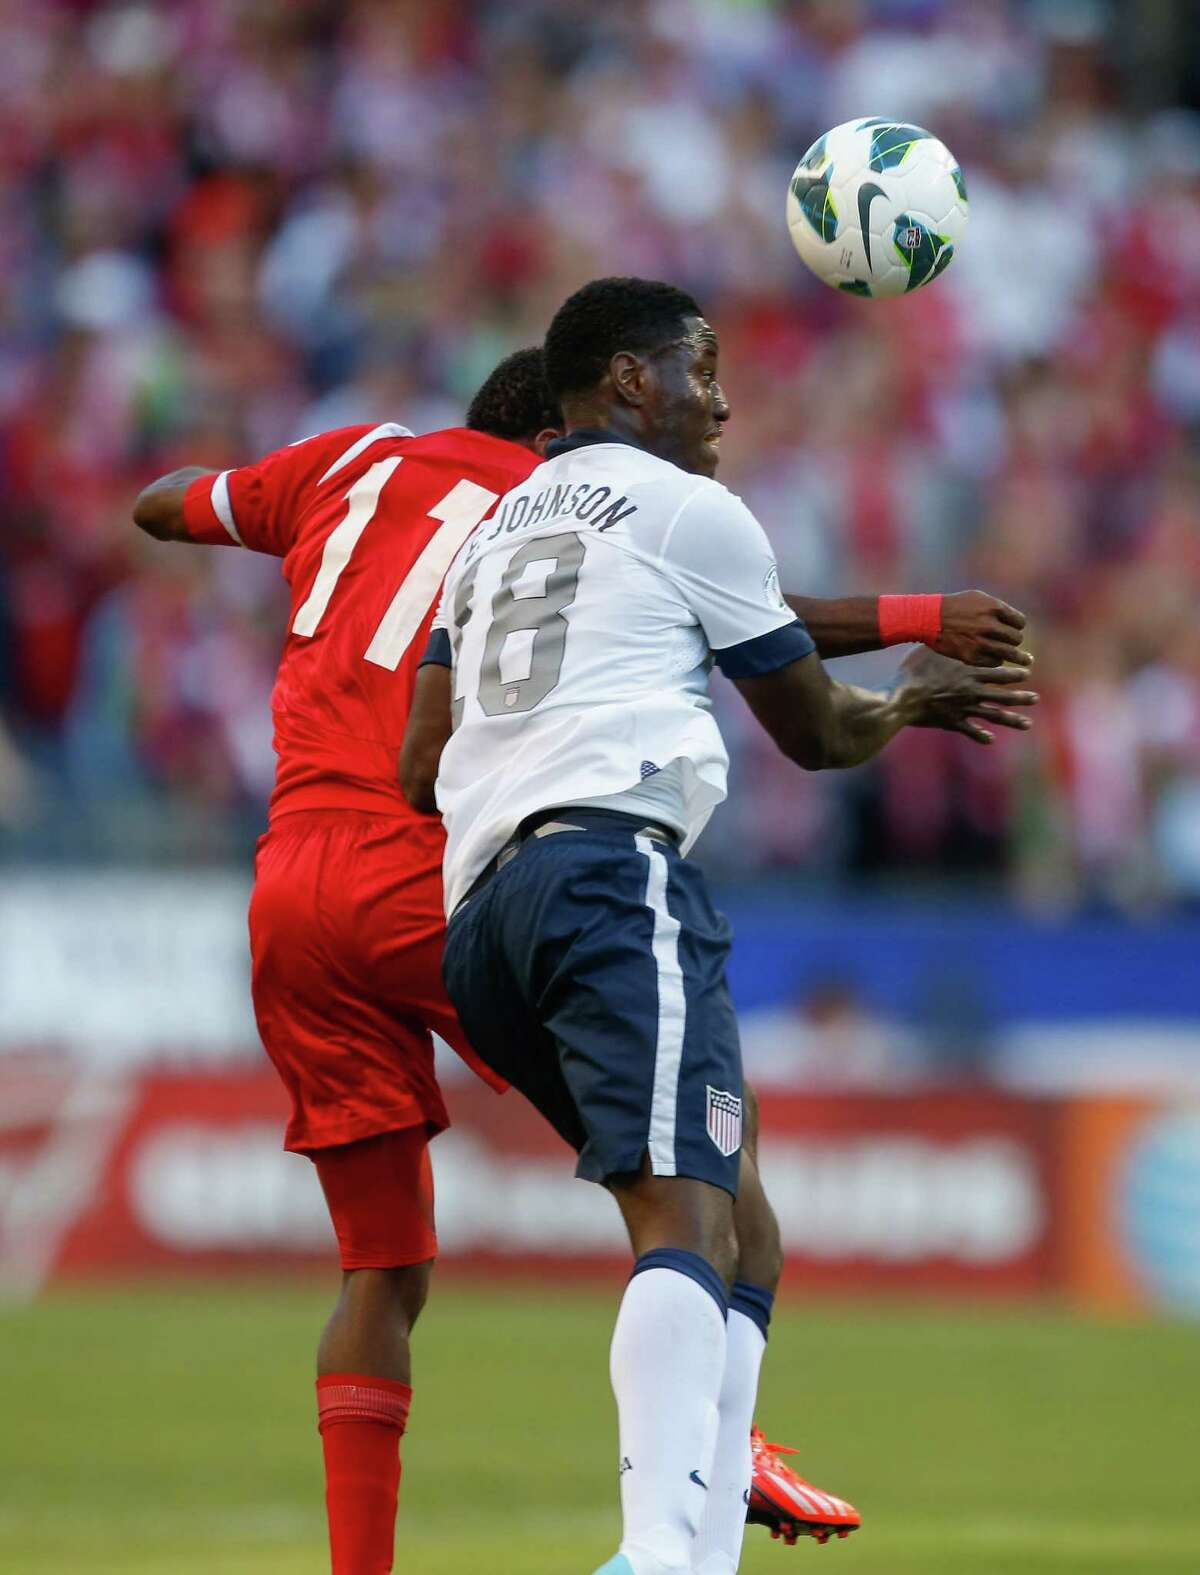 SEATTLE, WA - JUNE 11: Eddie Johnson #18 of USA heads the ball against Armando Cooper #11 of Panama during the FIFA 2014 World Cup Qualifier at CenturyLink Field on June 11, 2013 in Seattle, Washington.